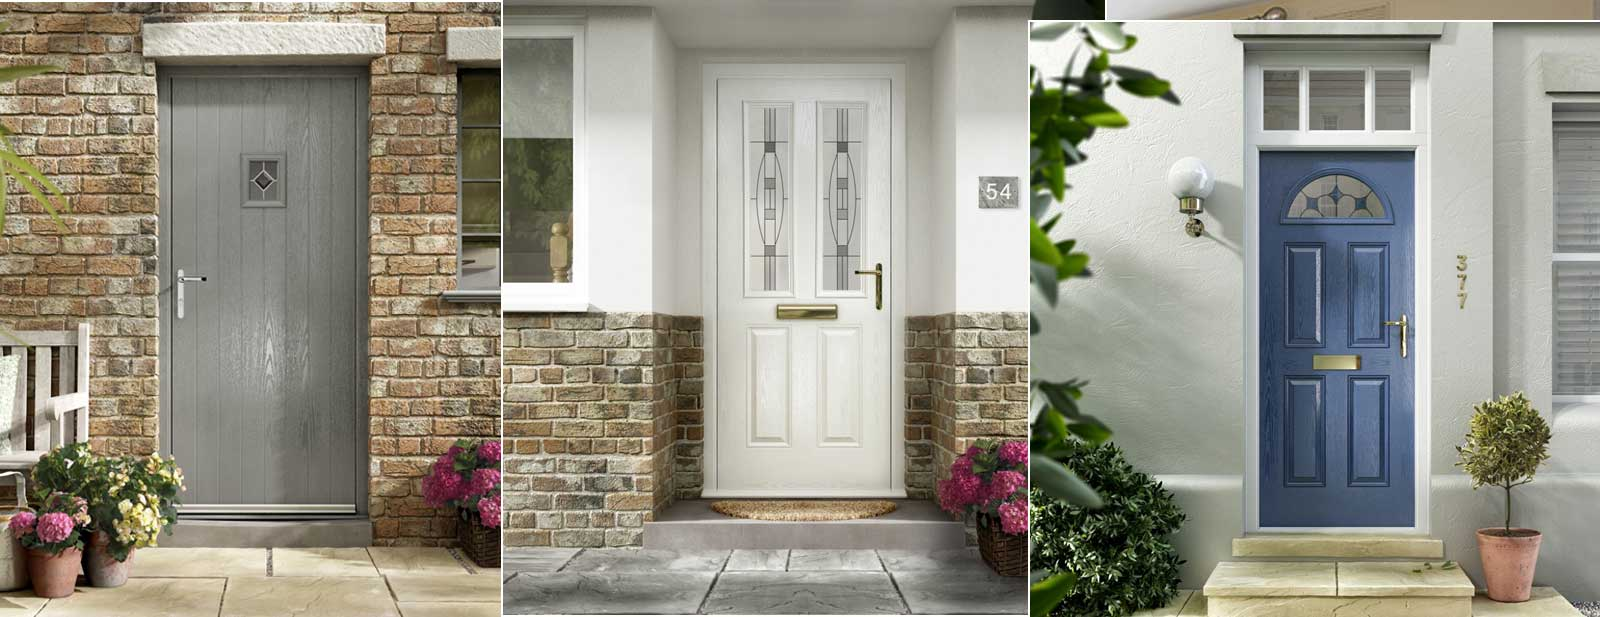 Weatherglaze Pvcu Windows And Composite Doors Gorey Co Wexford Cost Of Wiring A House In Ireland